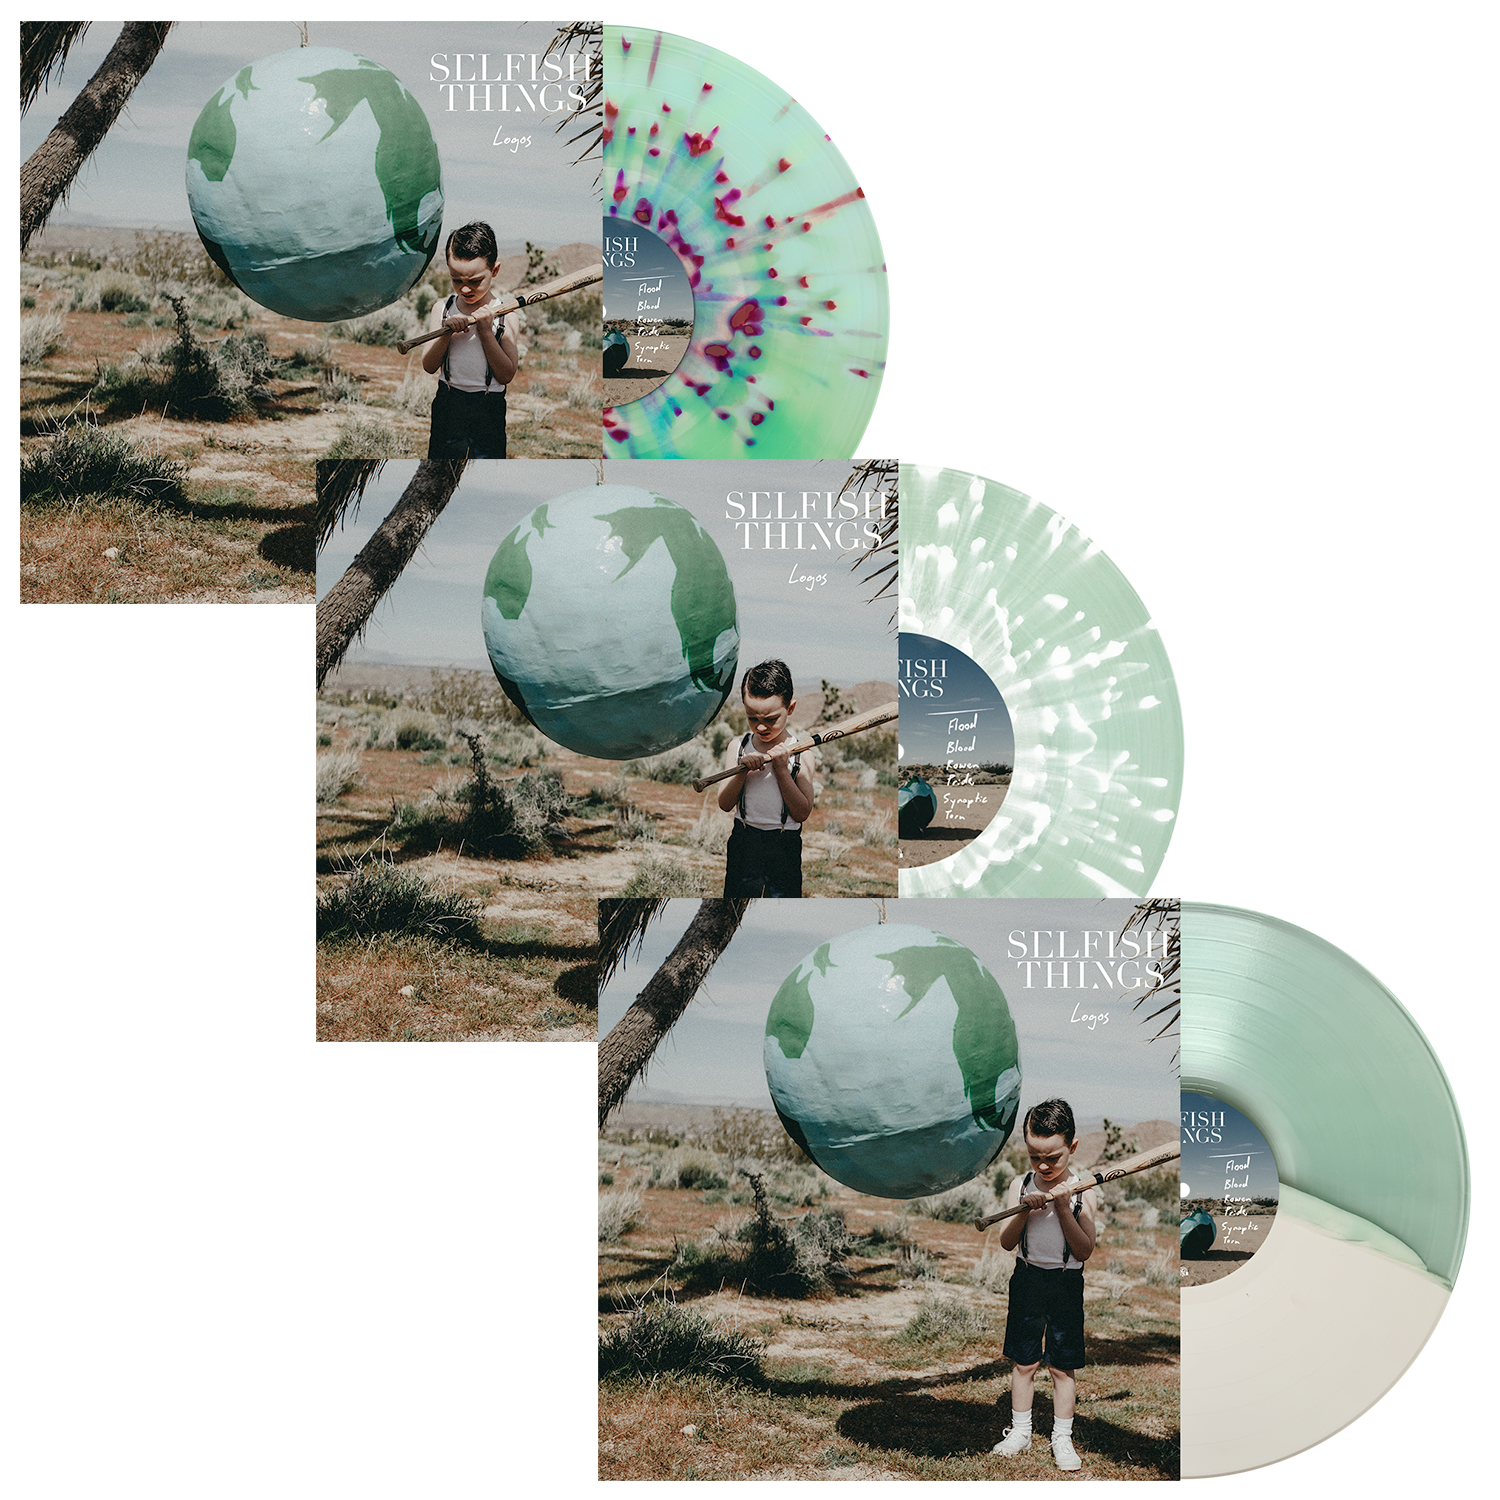 Selfish Things 'Logos' LP Bundle